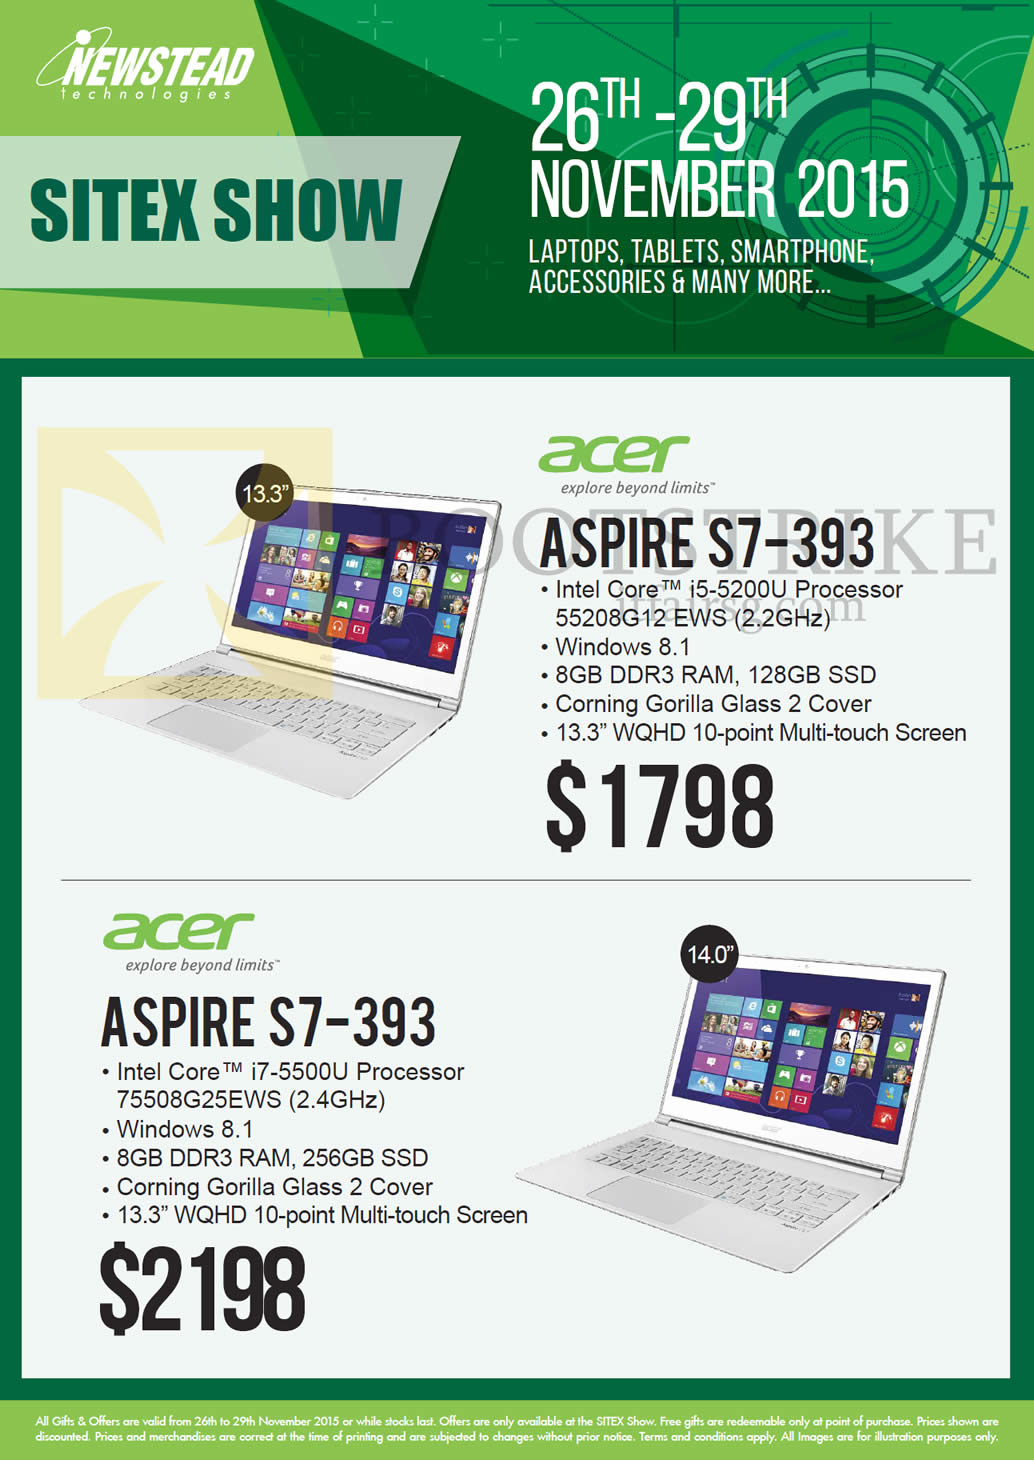 SITEX 2015 price list image brochure of Acer Newstead Notebooks Aspire, S7-393 5200U, 5500U